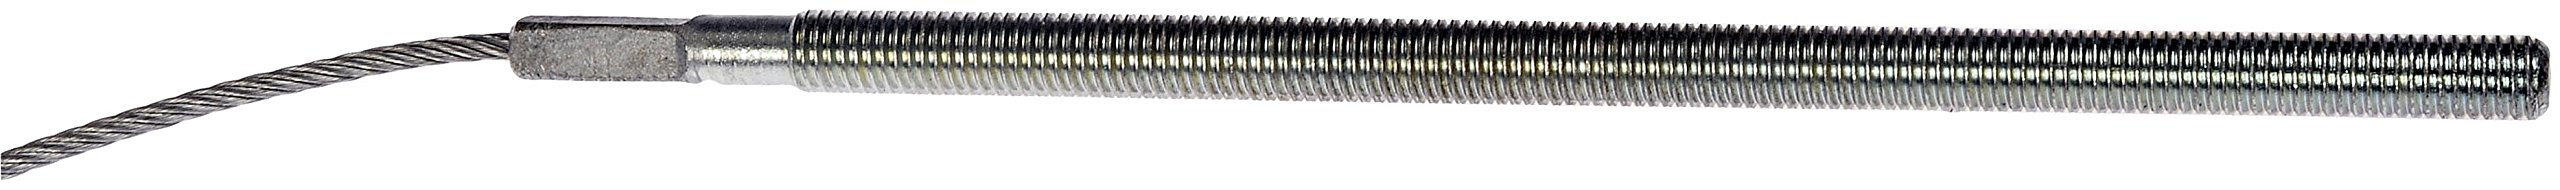 Dorman 924-5604 Clutch Cable by Dorman (Image #3)